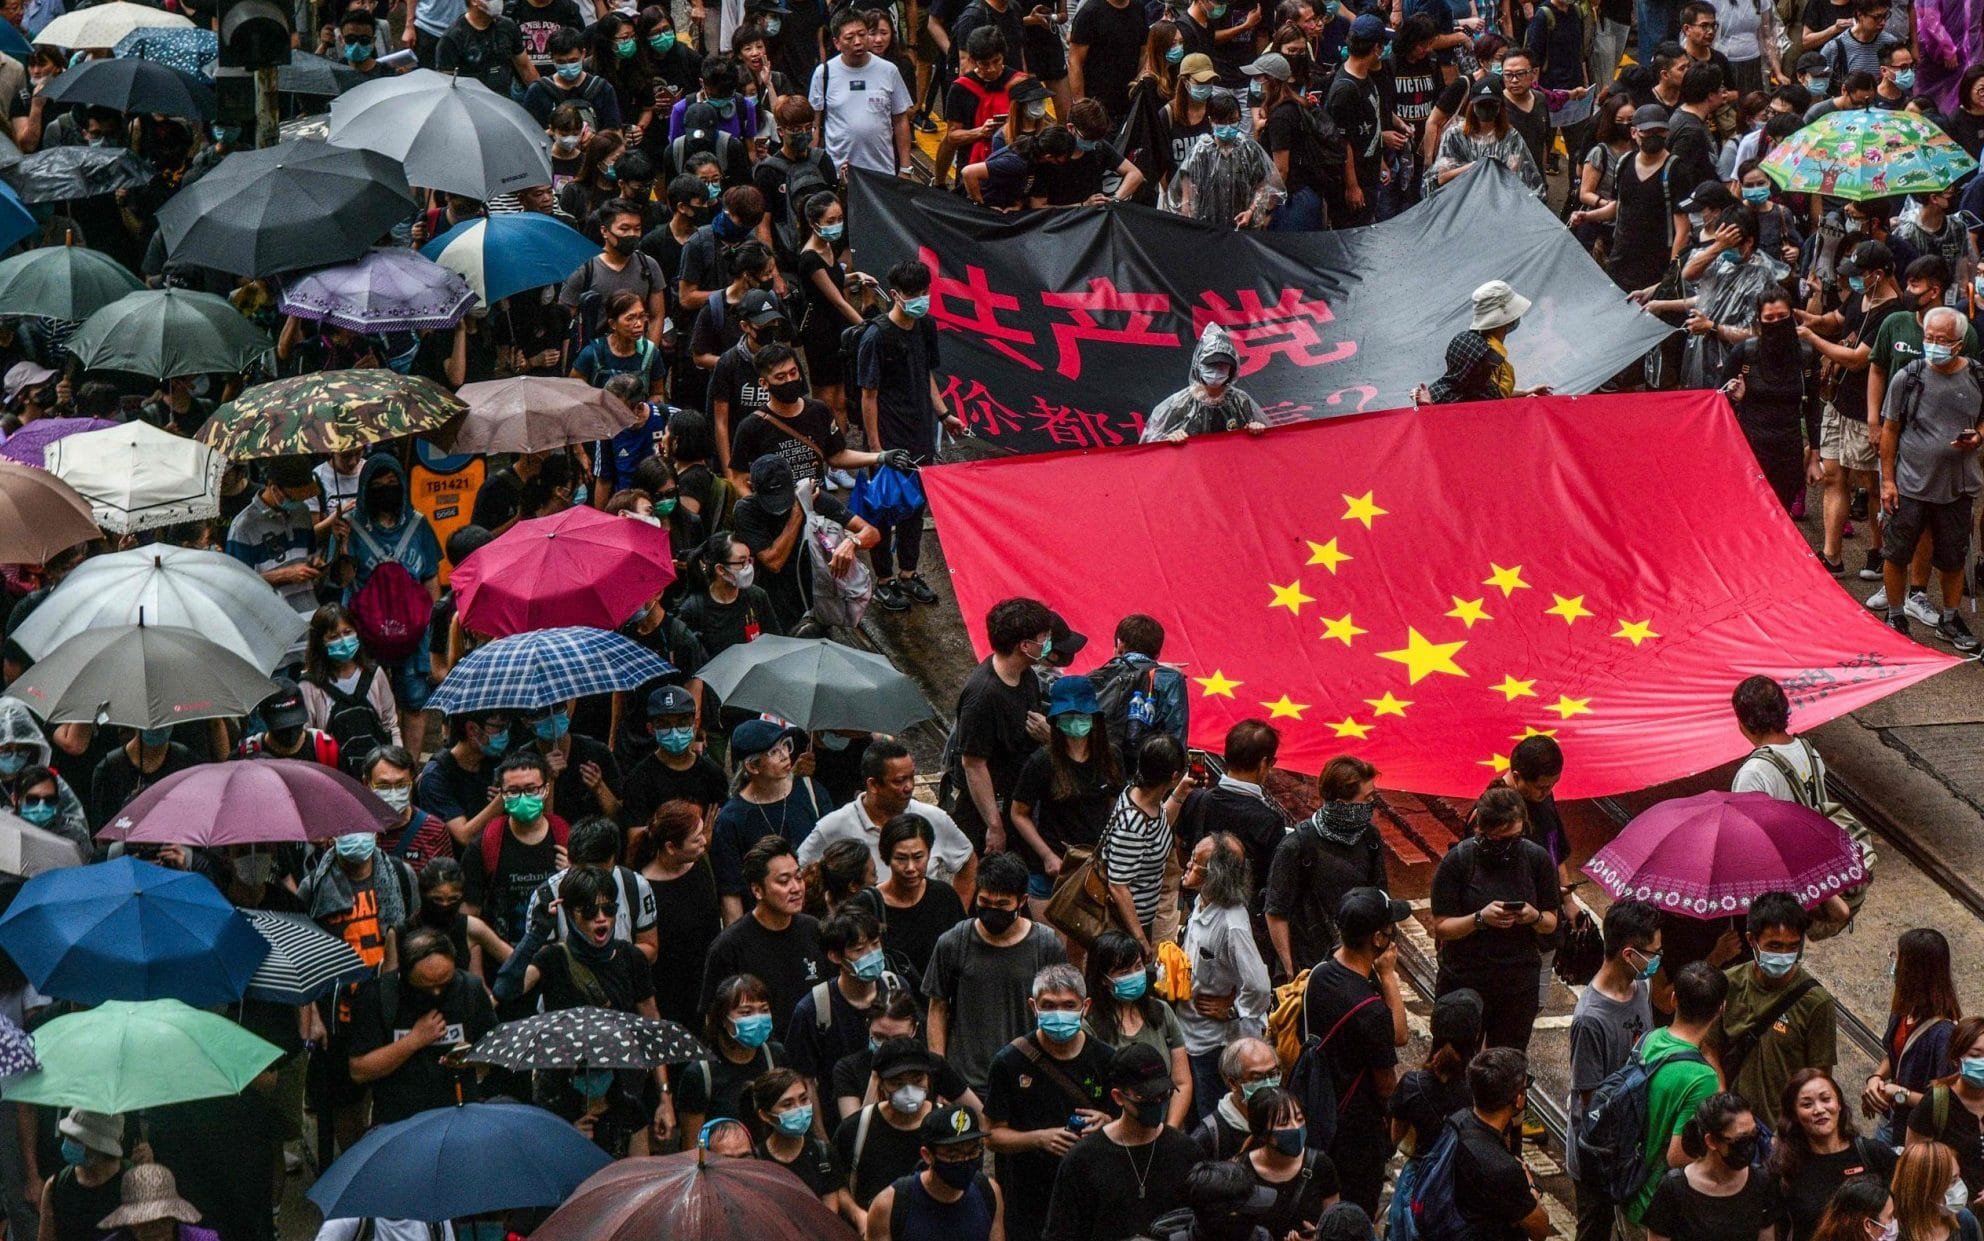 Hong Kong police fire water cannon and tear gas as protesters defy rally ban with petrol bombs